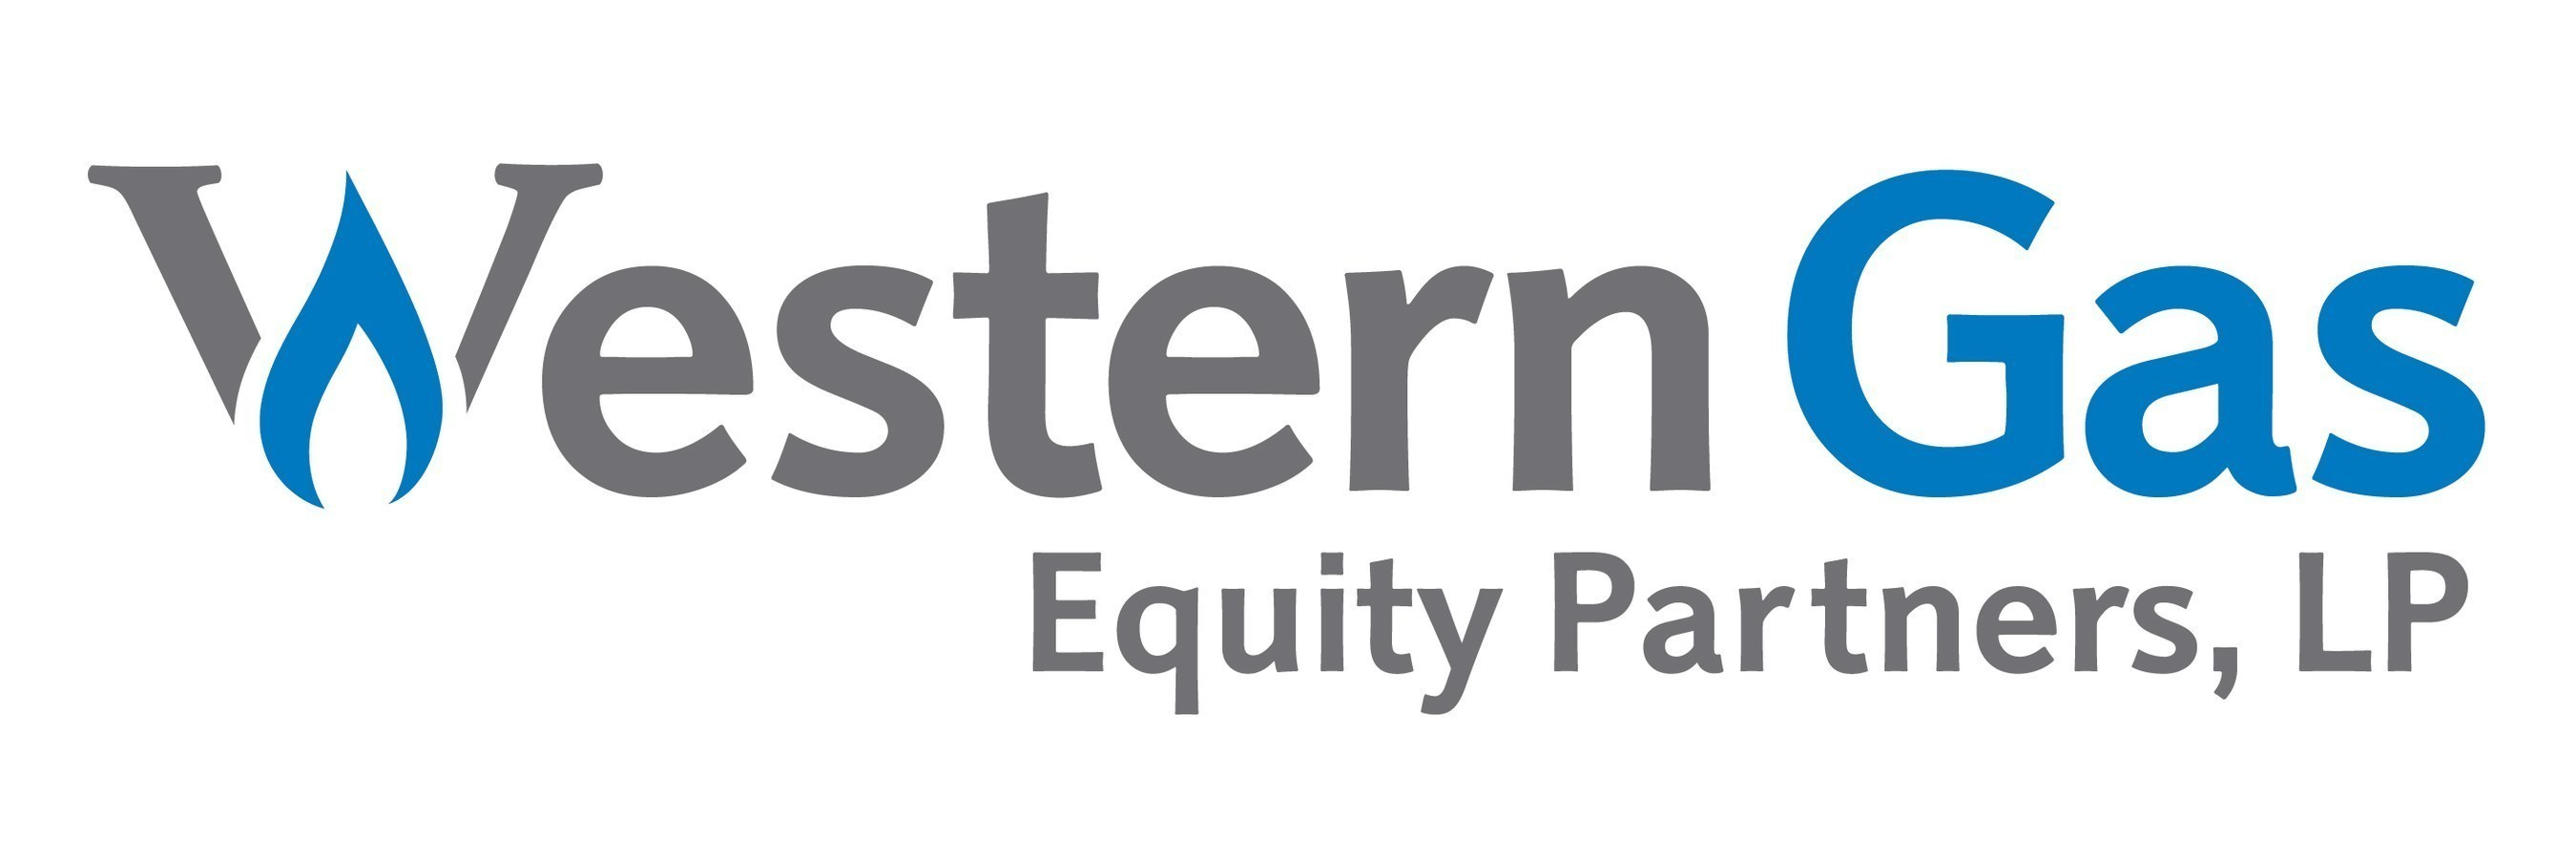 Western Gas Equity Partners